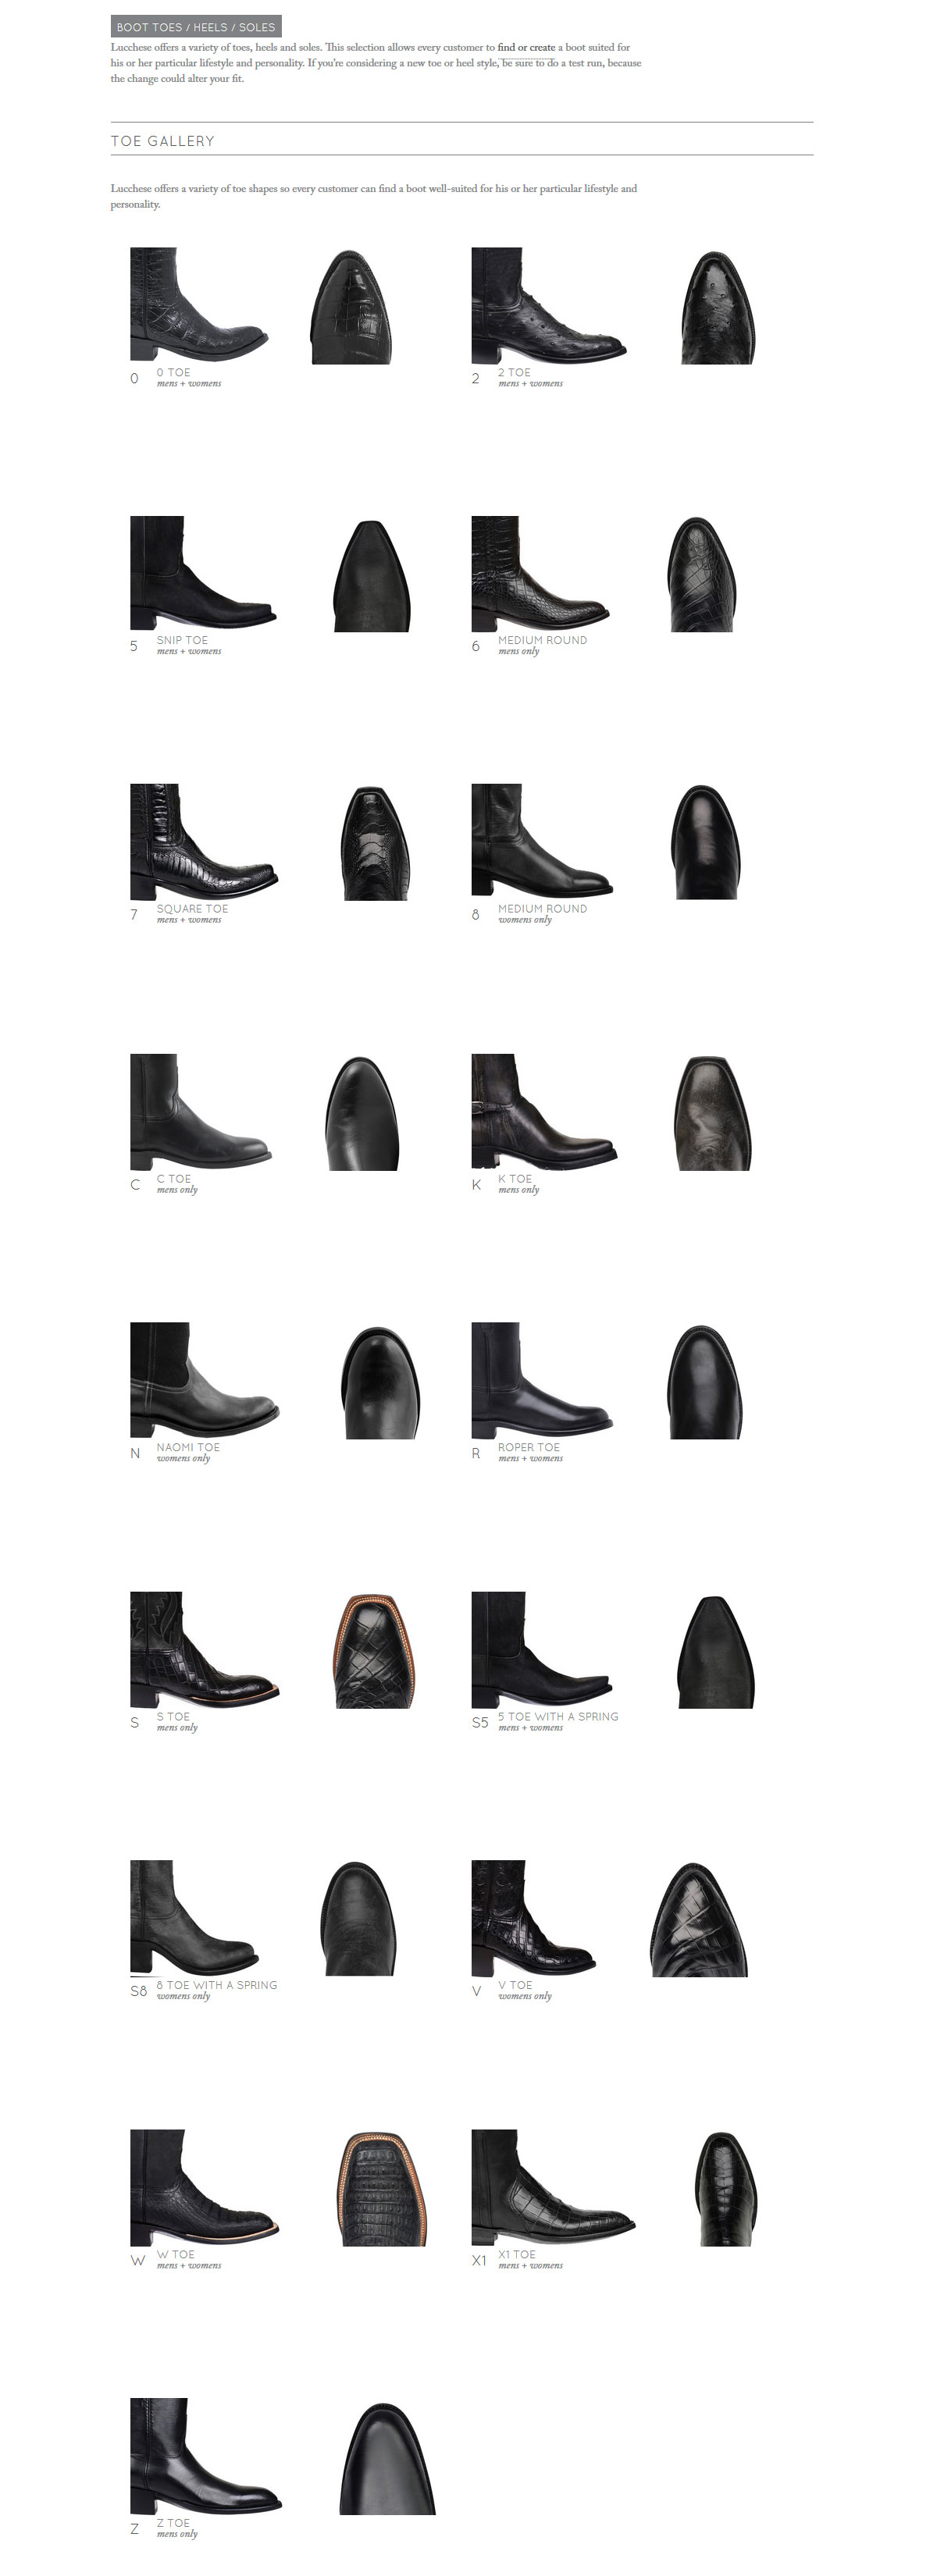 lucchese-toe-gallery.jpg